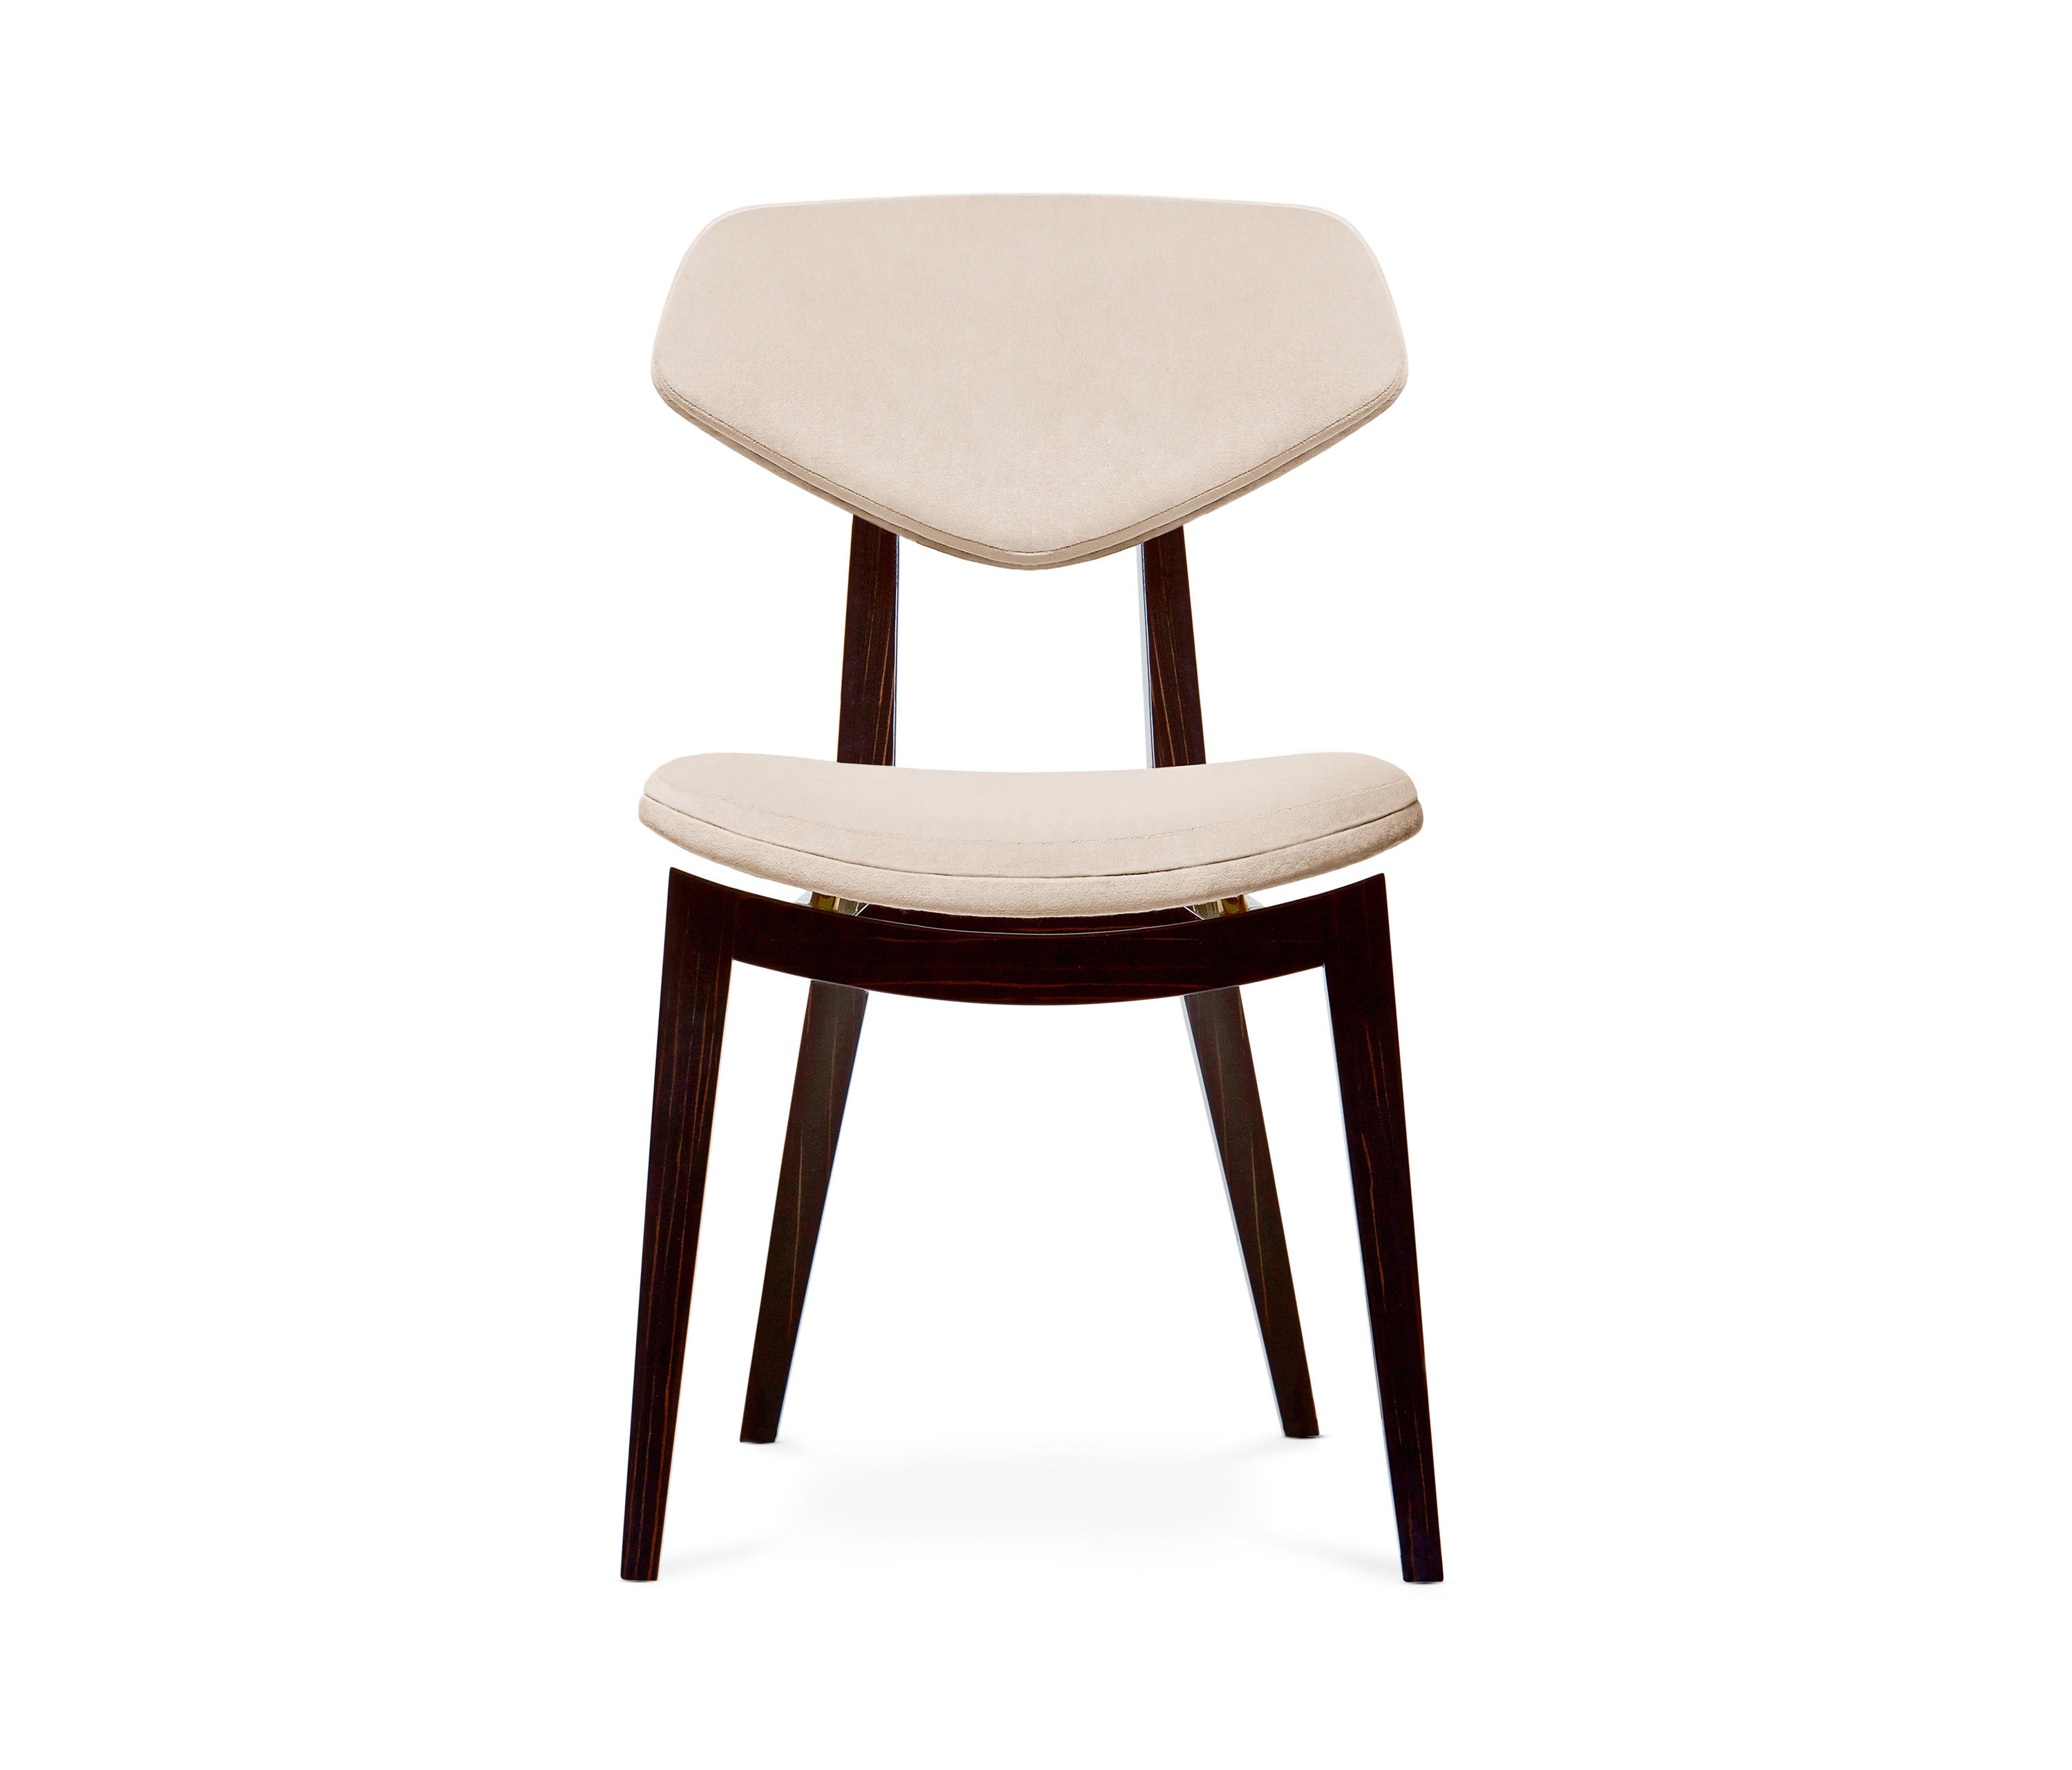 ... Coleman | Chair By MUNNA | Chairs ...